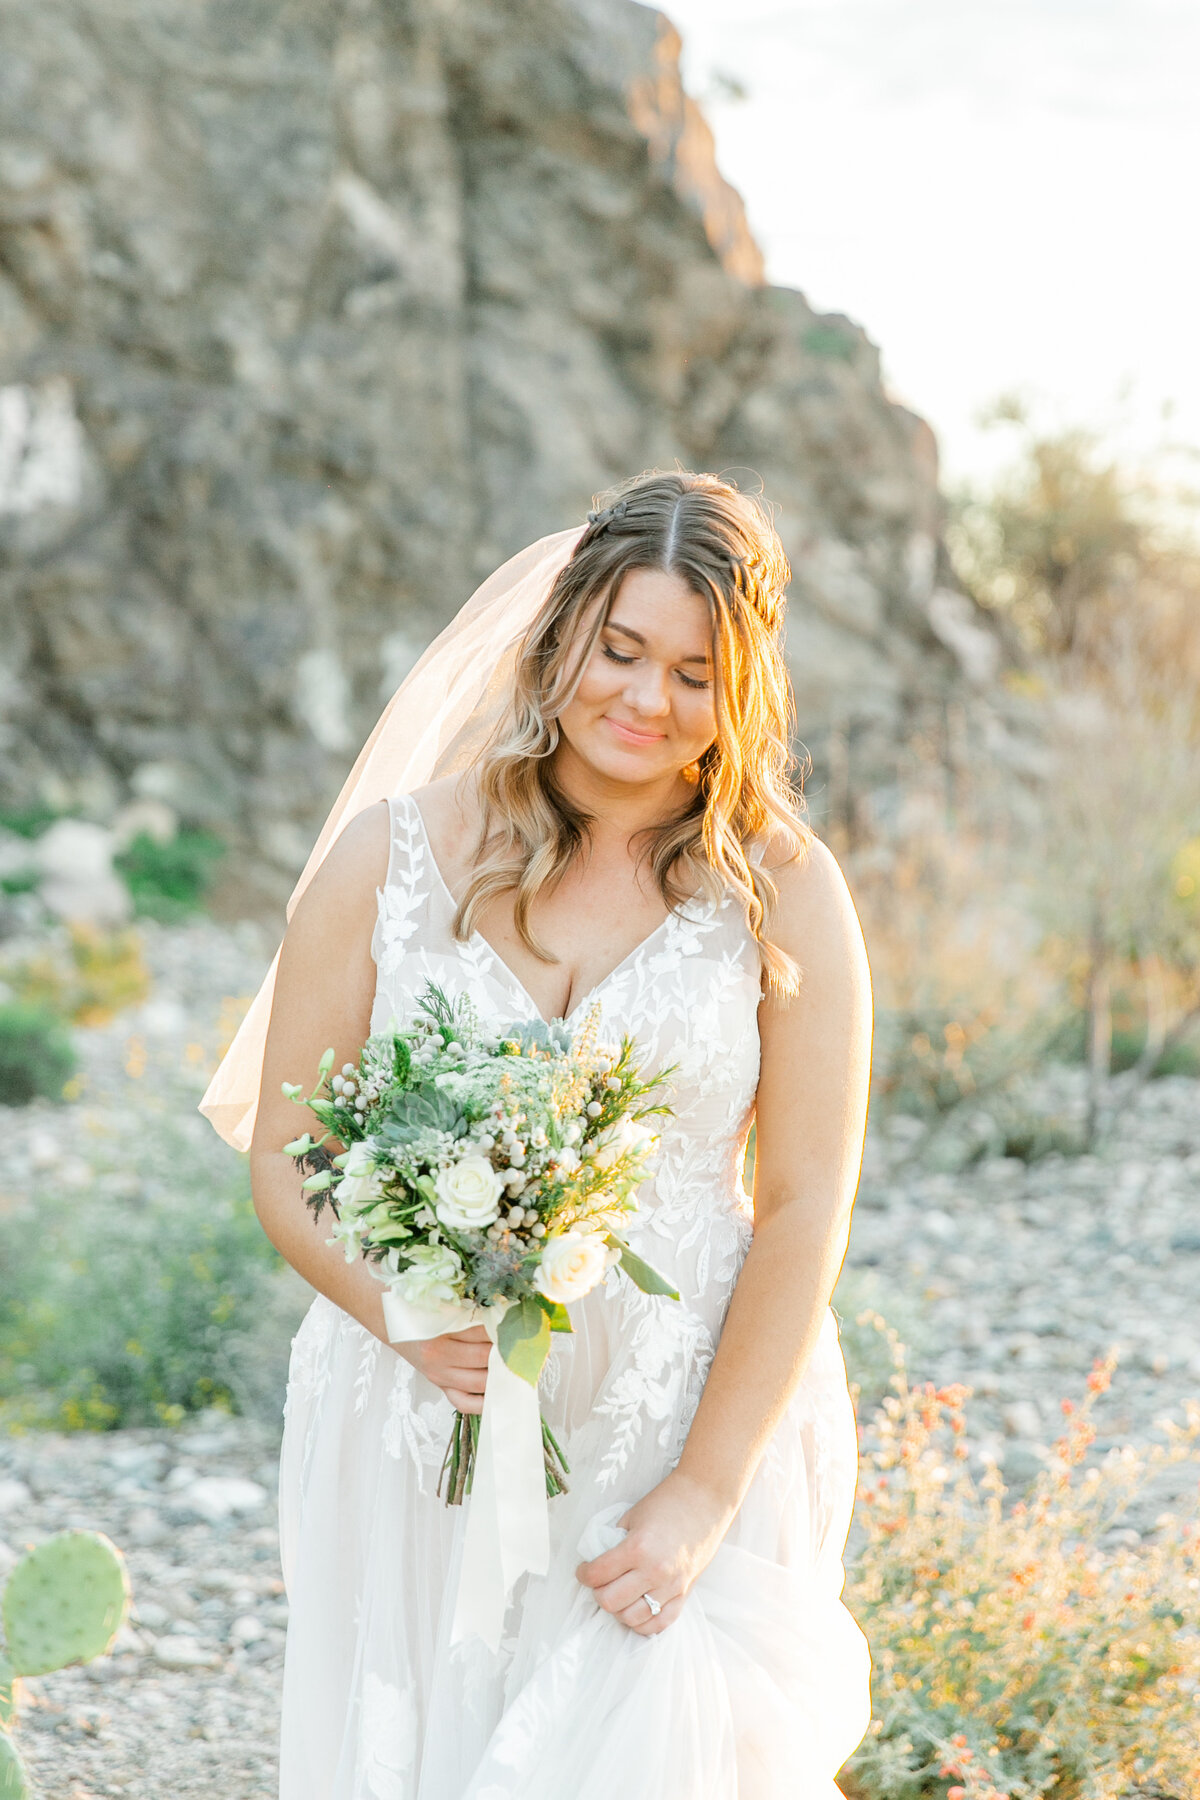 Karlie Colleen Photography - Arizona Backyard wedding - Brittney & Josh-229